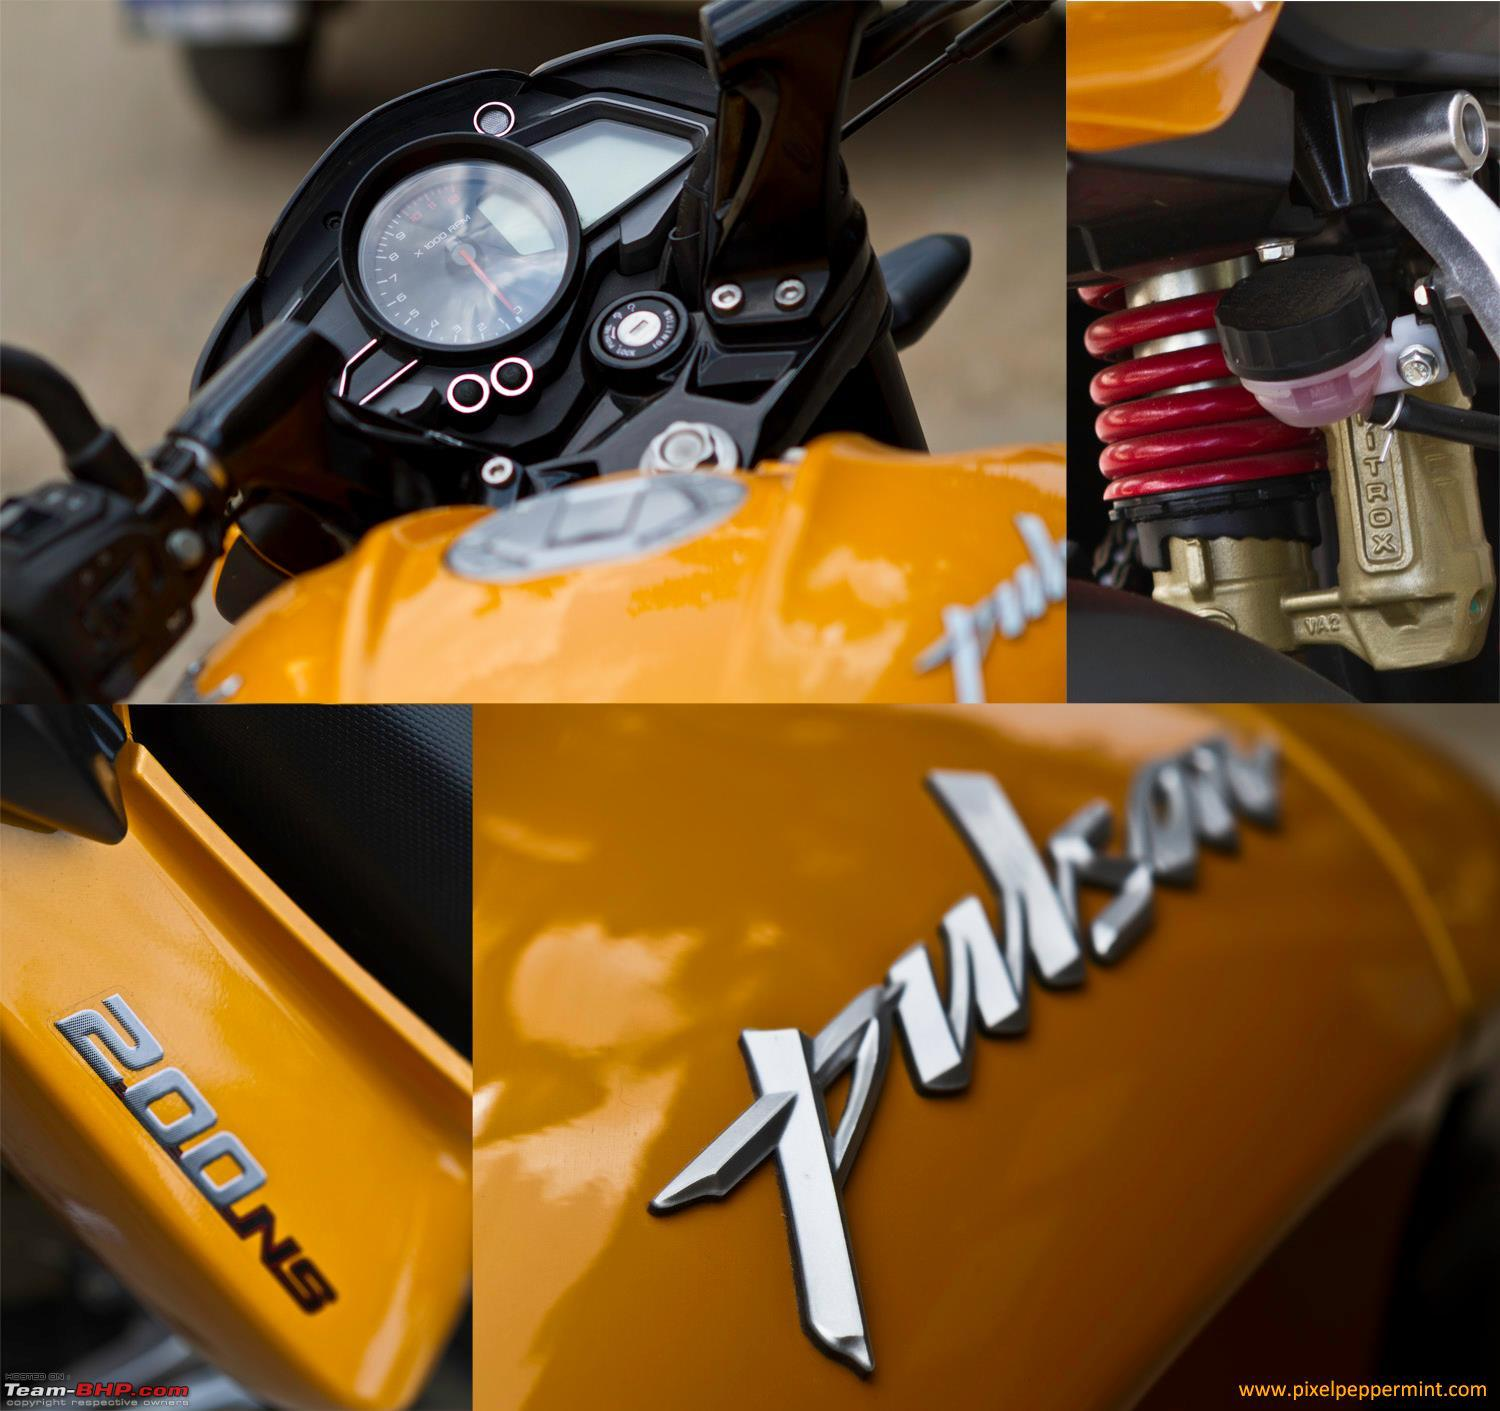 Bike stickering designs for pulsar 150 - Bajaj Pulsar 200 Ns Ownership Review 2200 Kms Collage Jpg